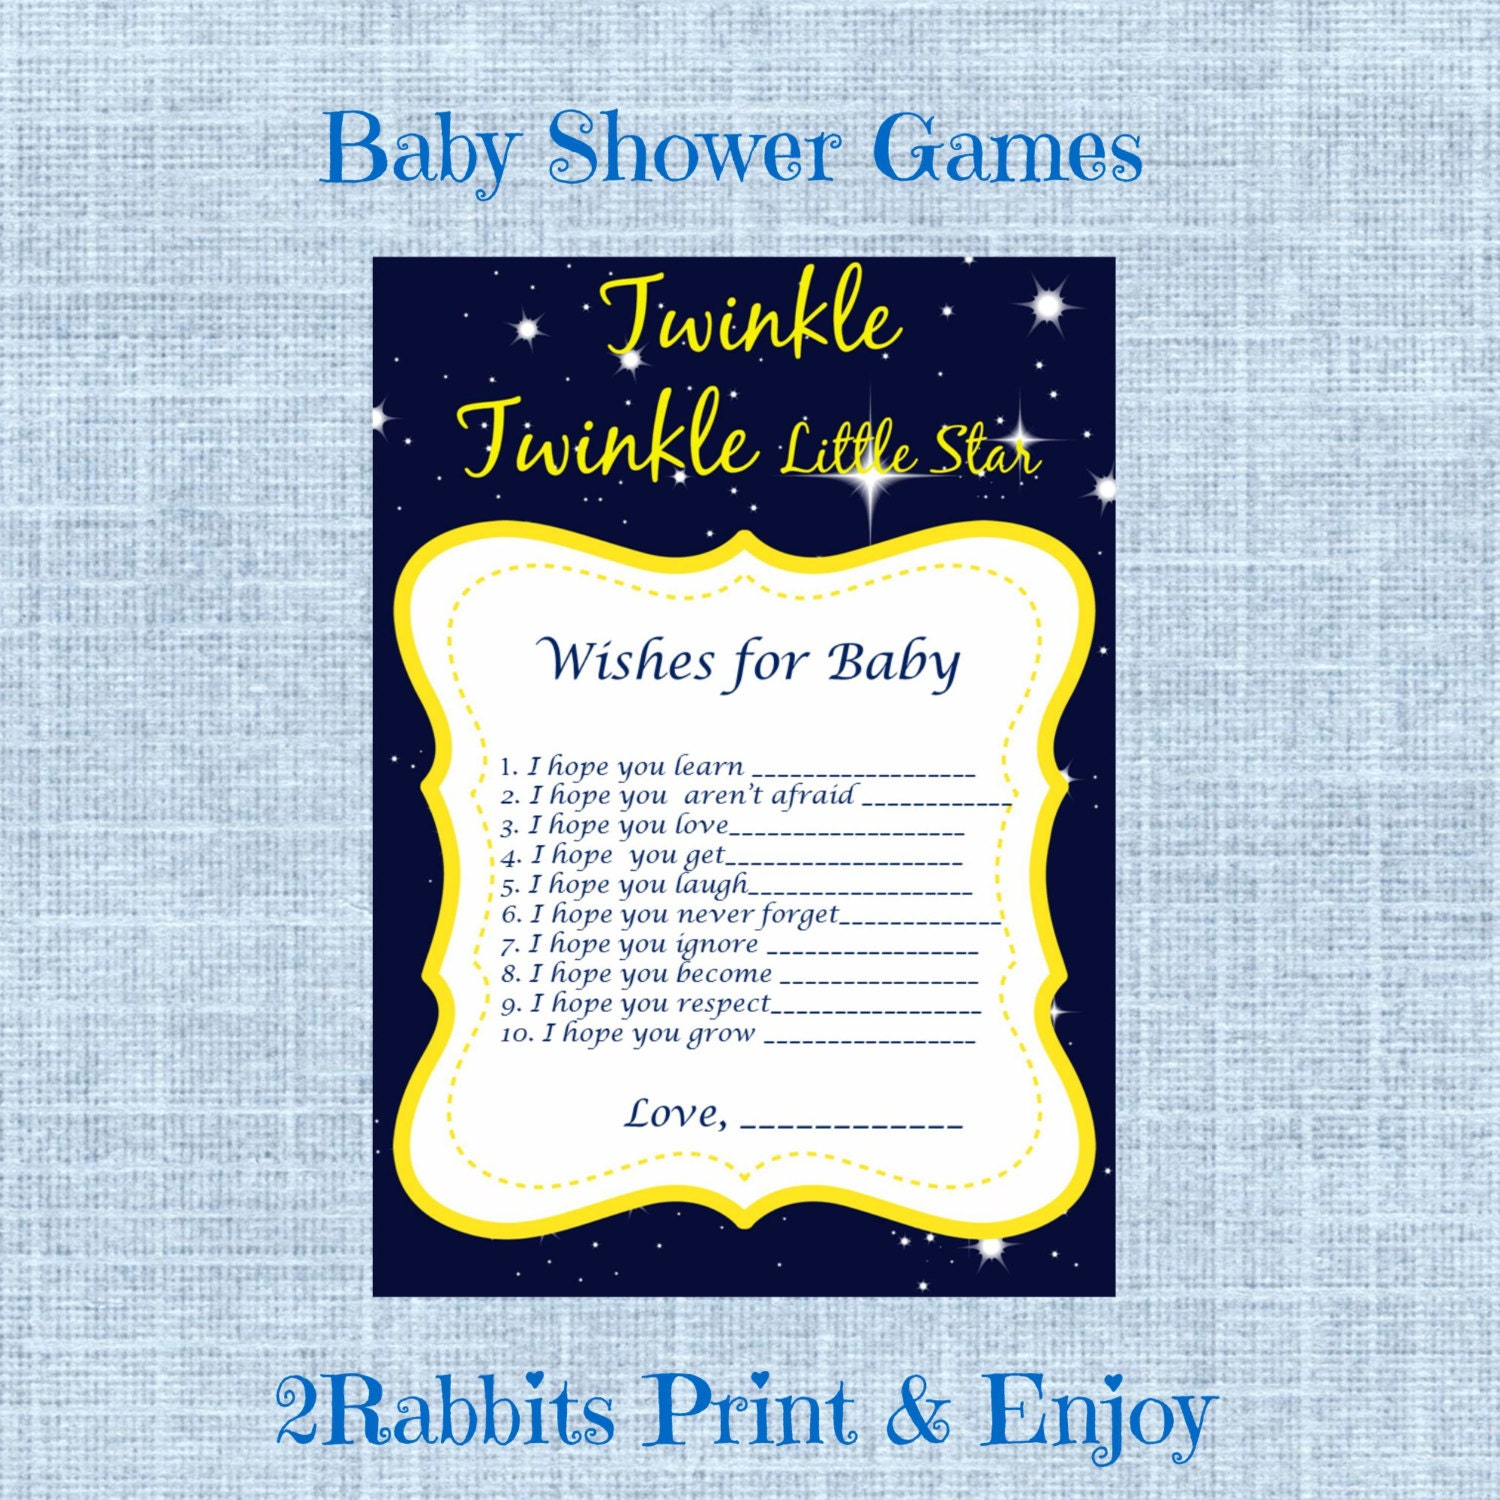 wishes for baby twinkle twinkle little star baby shower